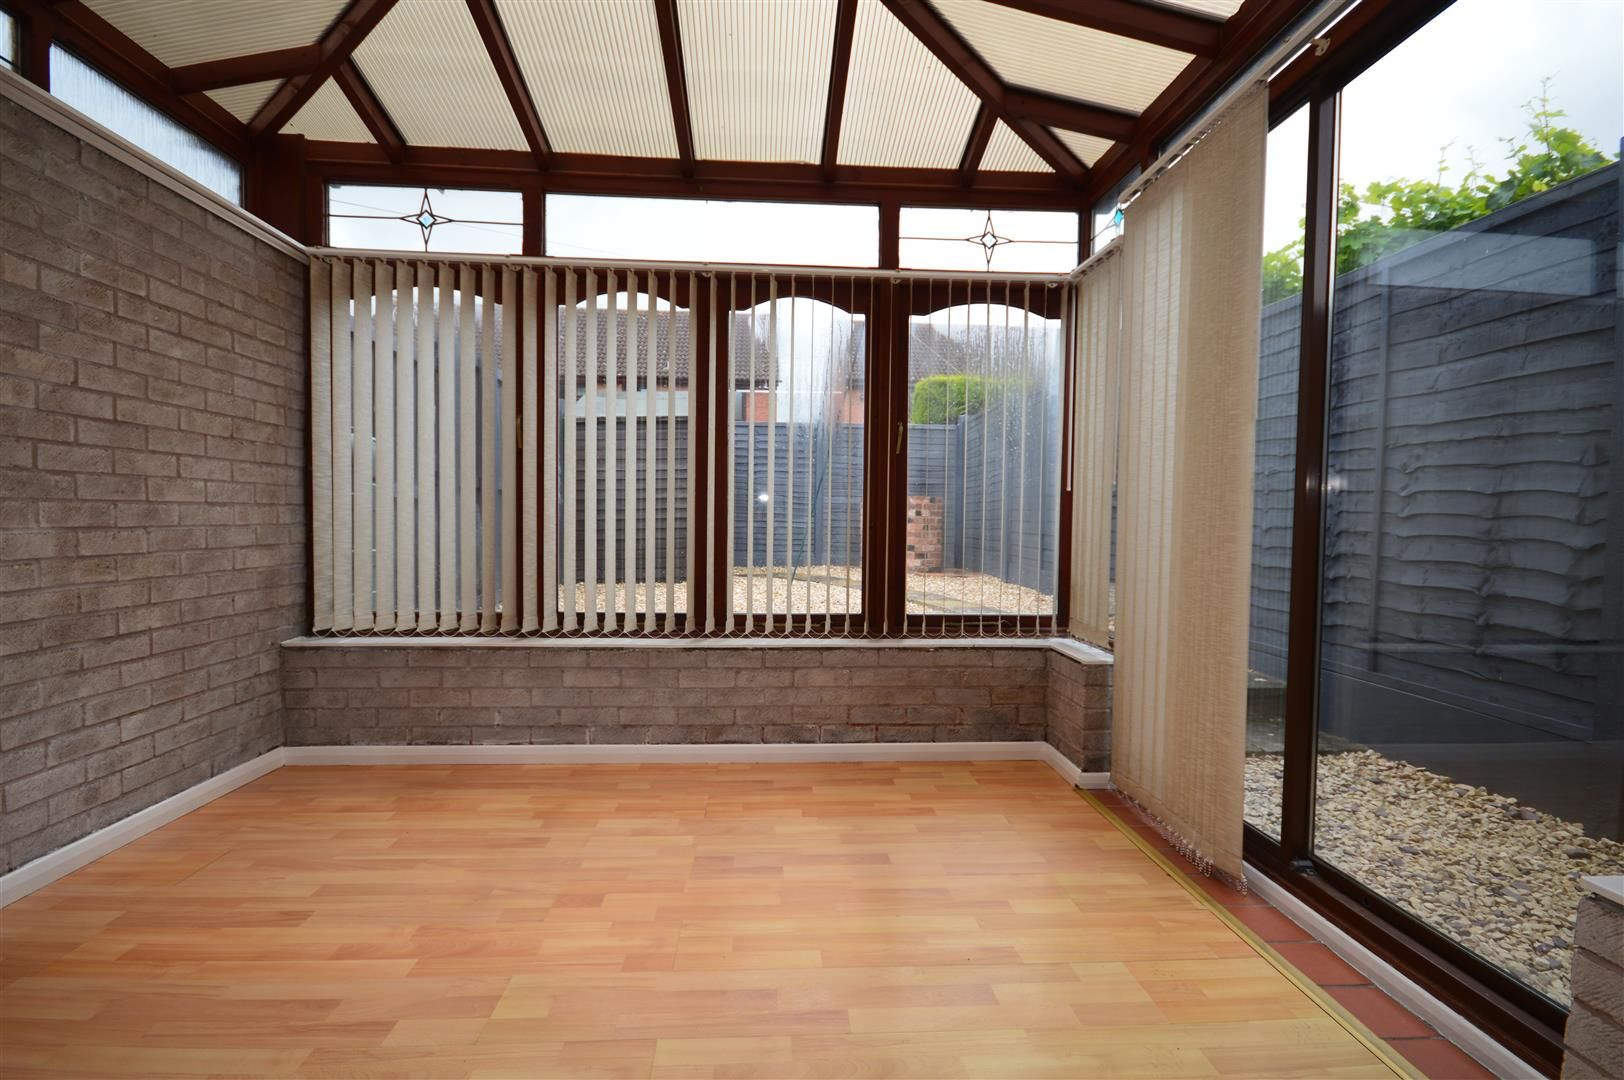 2 bed end-of-terrace for sale in Belmont  - Property Image 5